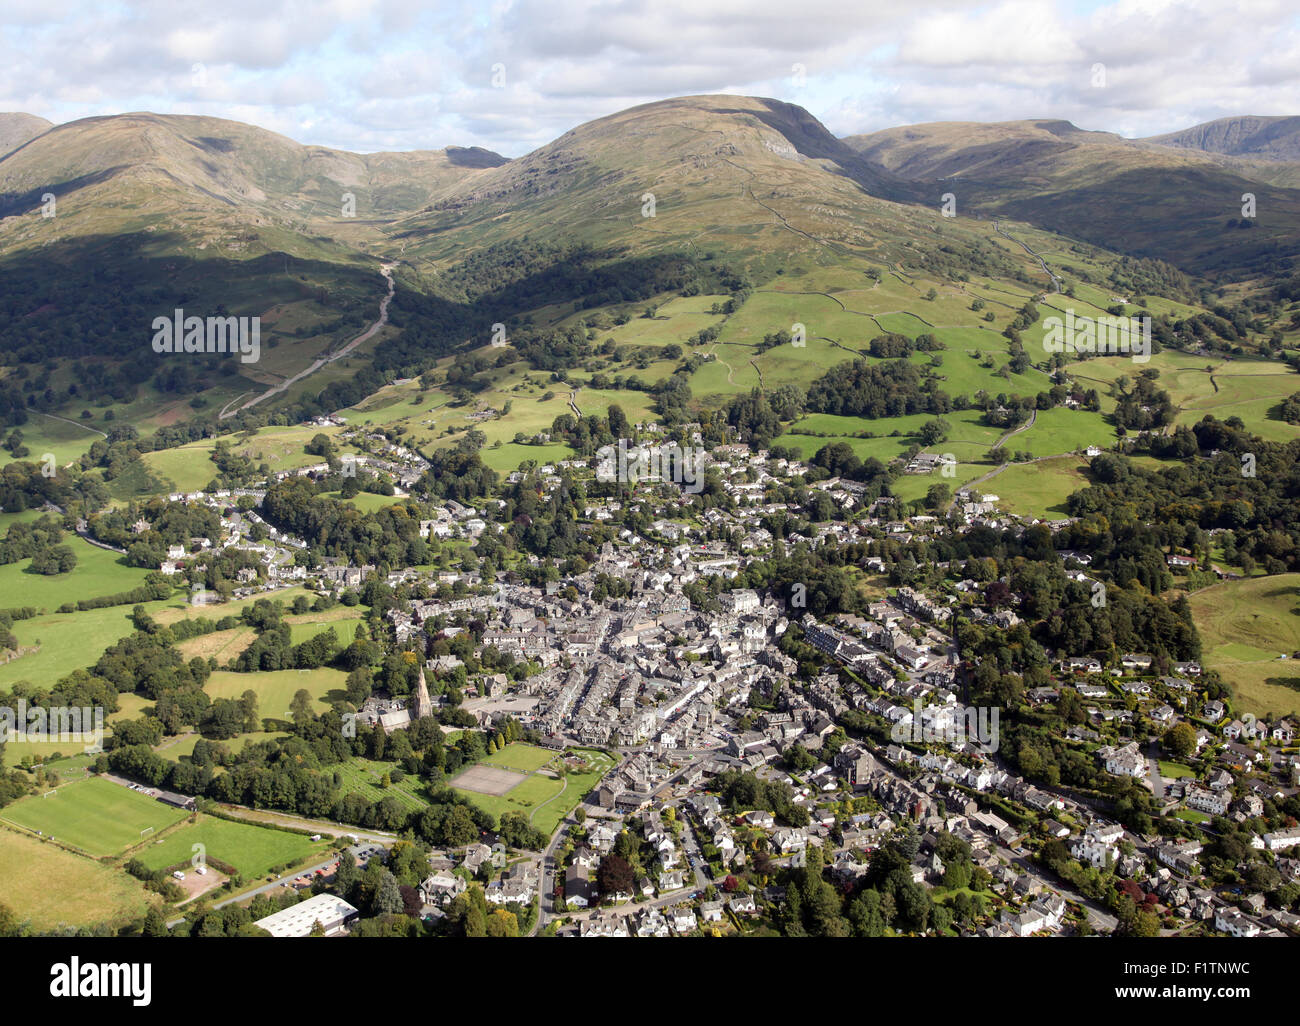 aerial view of Ambleside at the top of Lake Windermere, Cumbria, UK - Stock Image